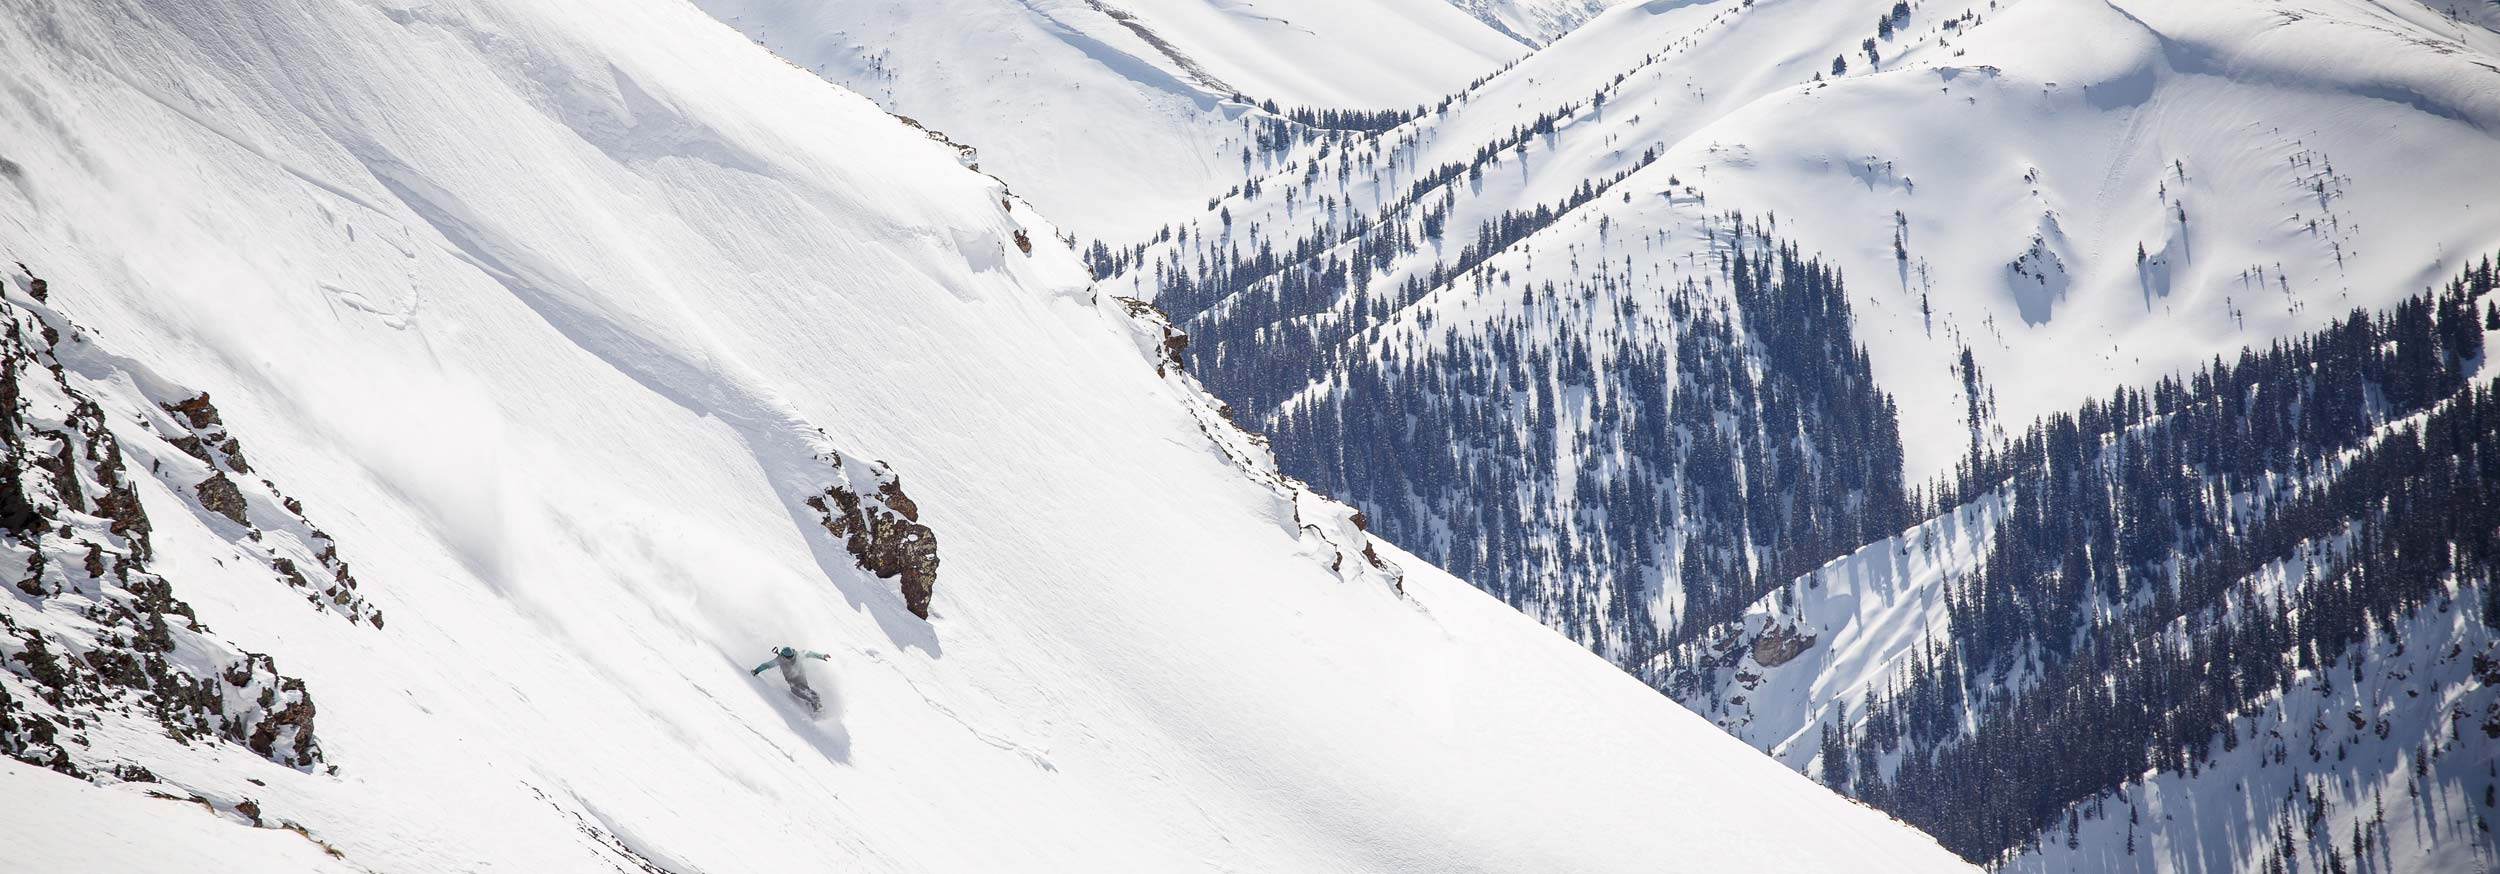 A snowboard experience is engulfed in snow making a toeside turn at Silverton Mountain Colorado